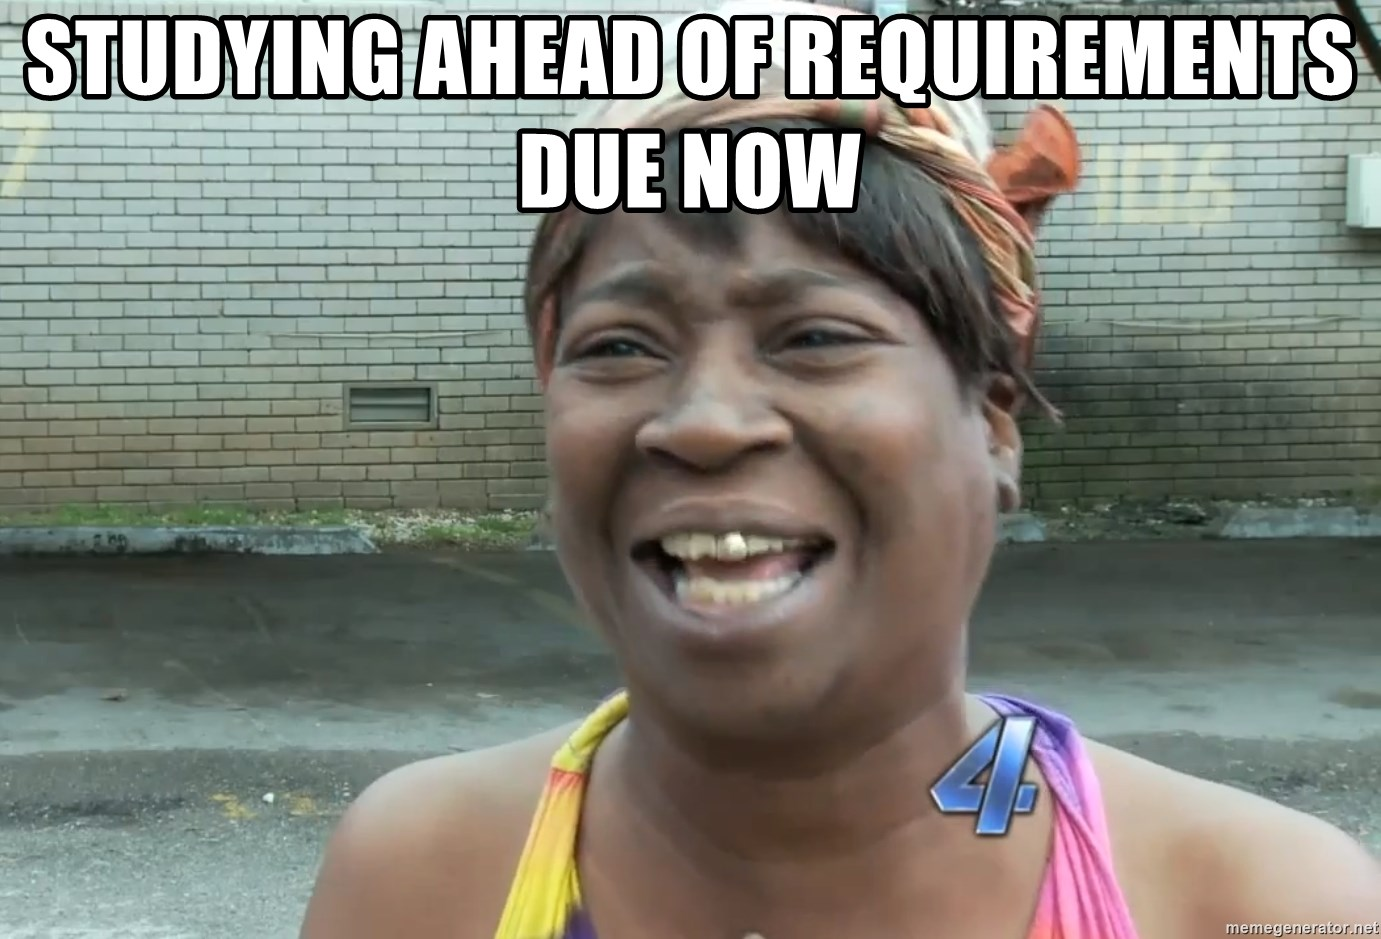 Ain`t nobody got time fot dat - Studying ahead of requirements due now